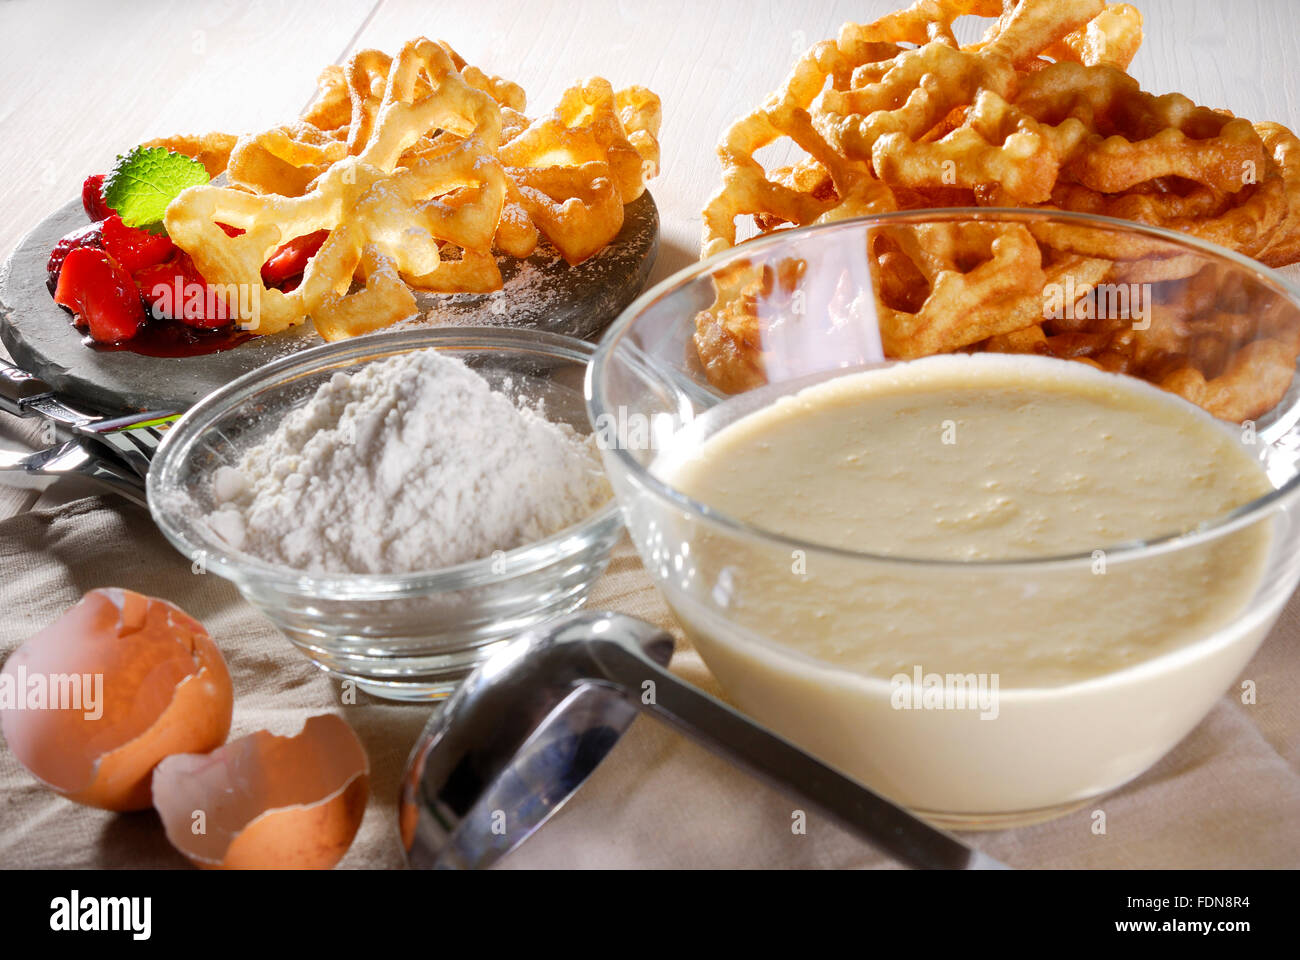 waffles,pastry,wafer preparation,wafer duff - Stock Image